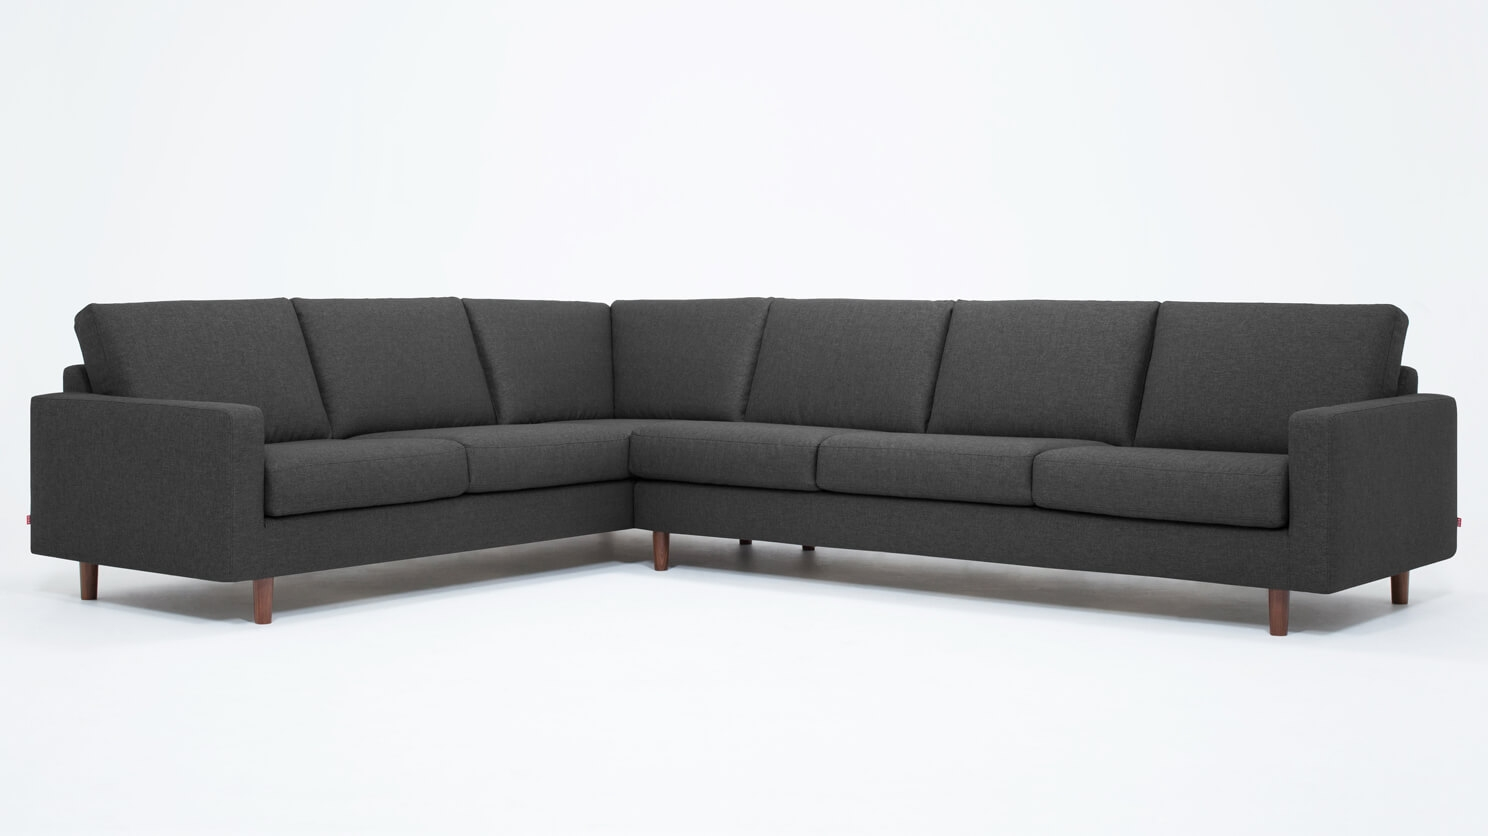 Delicieux Oskar 2 Piece Sectional Sofa   Fabric | EQ3